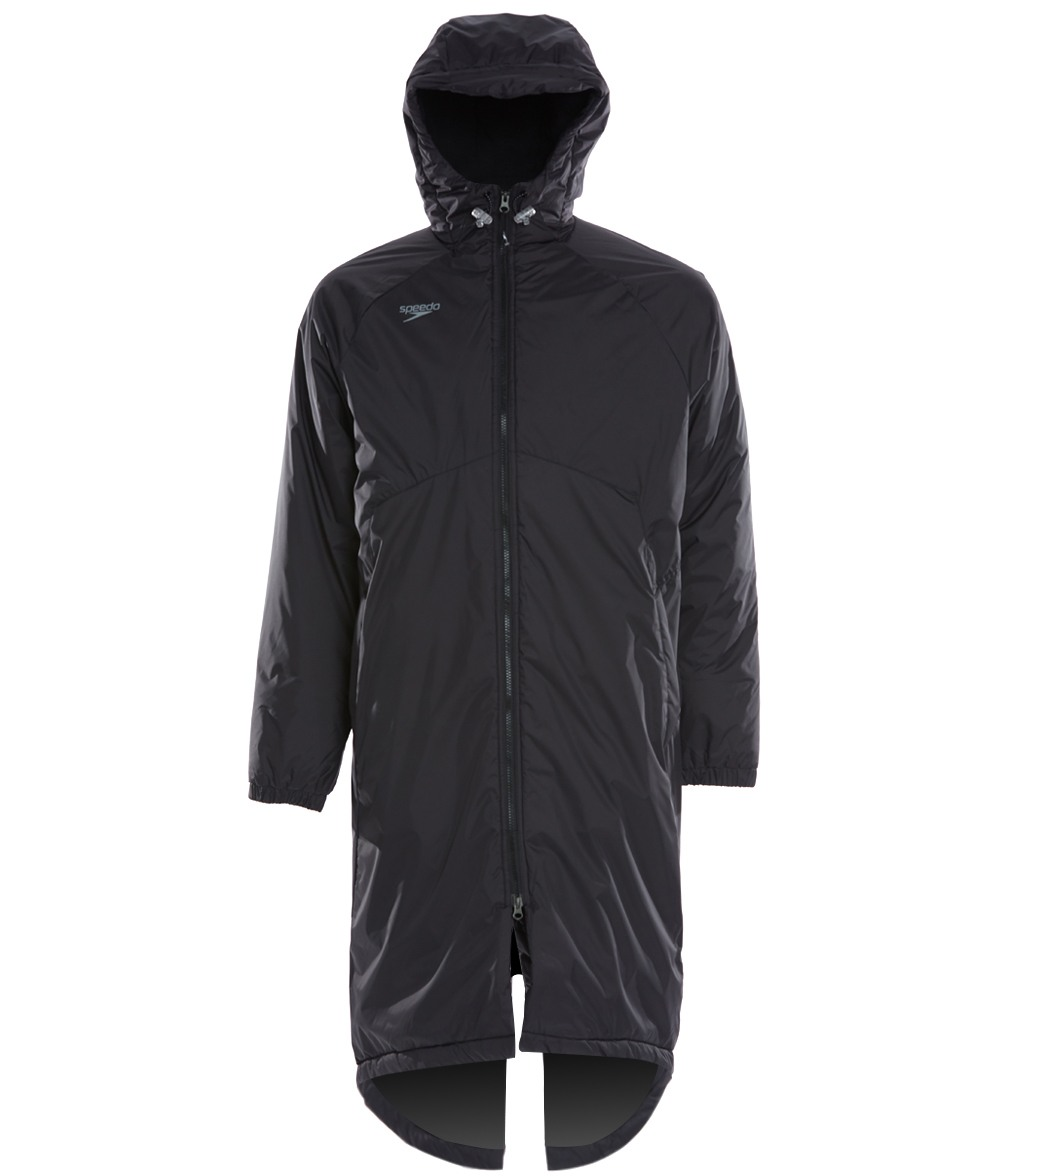 Speedo Unisex Elite Swim Parka